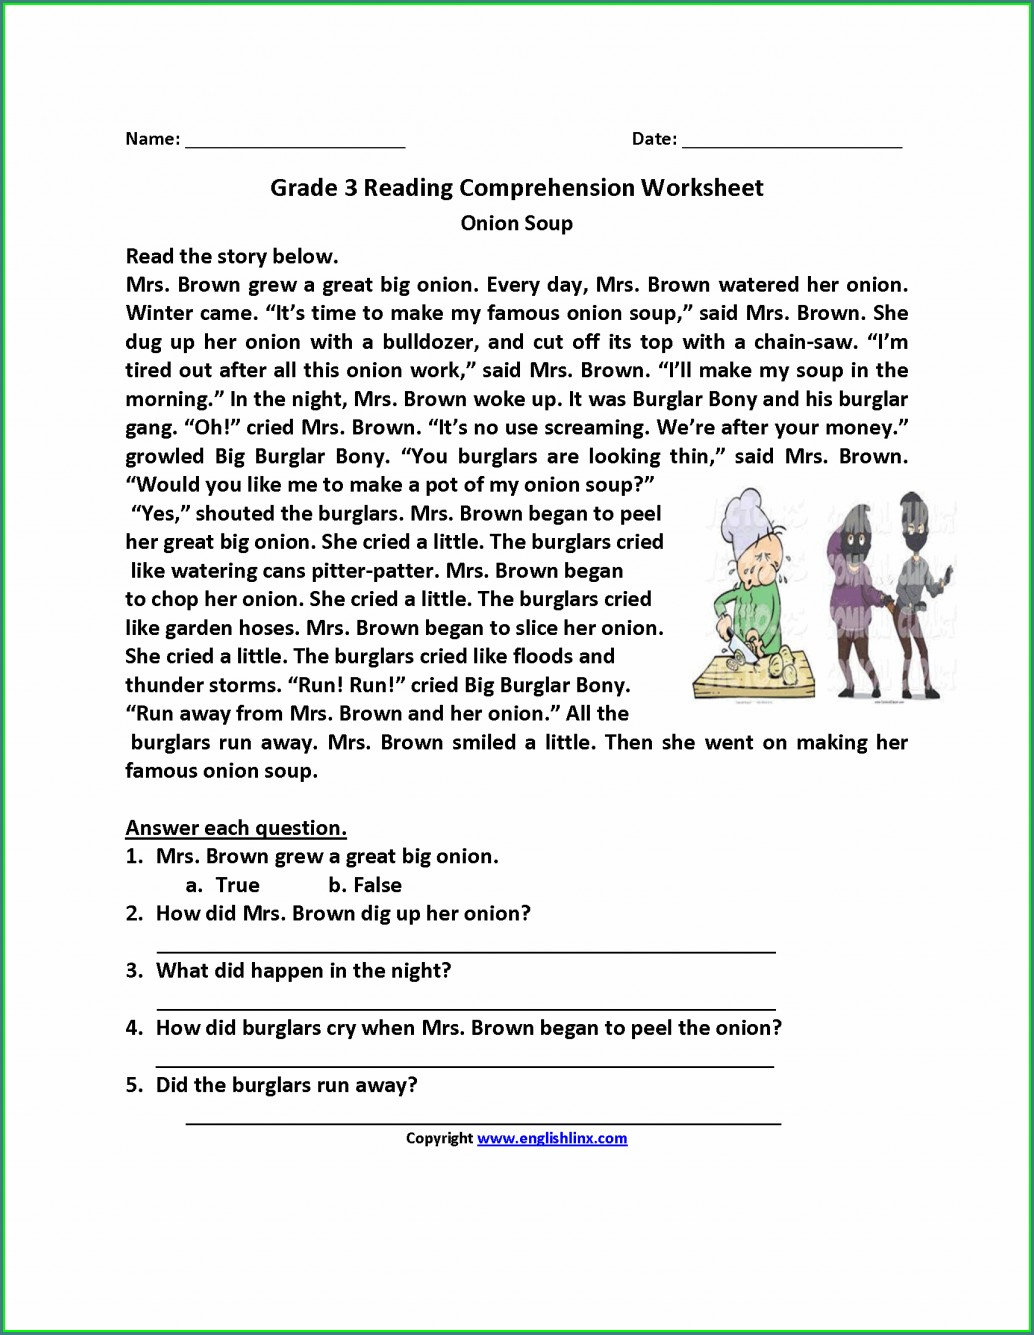 Comprehension Worksheet 3rd Grade